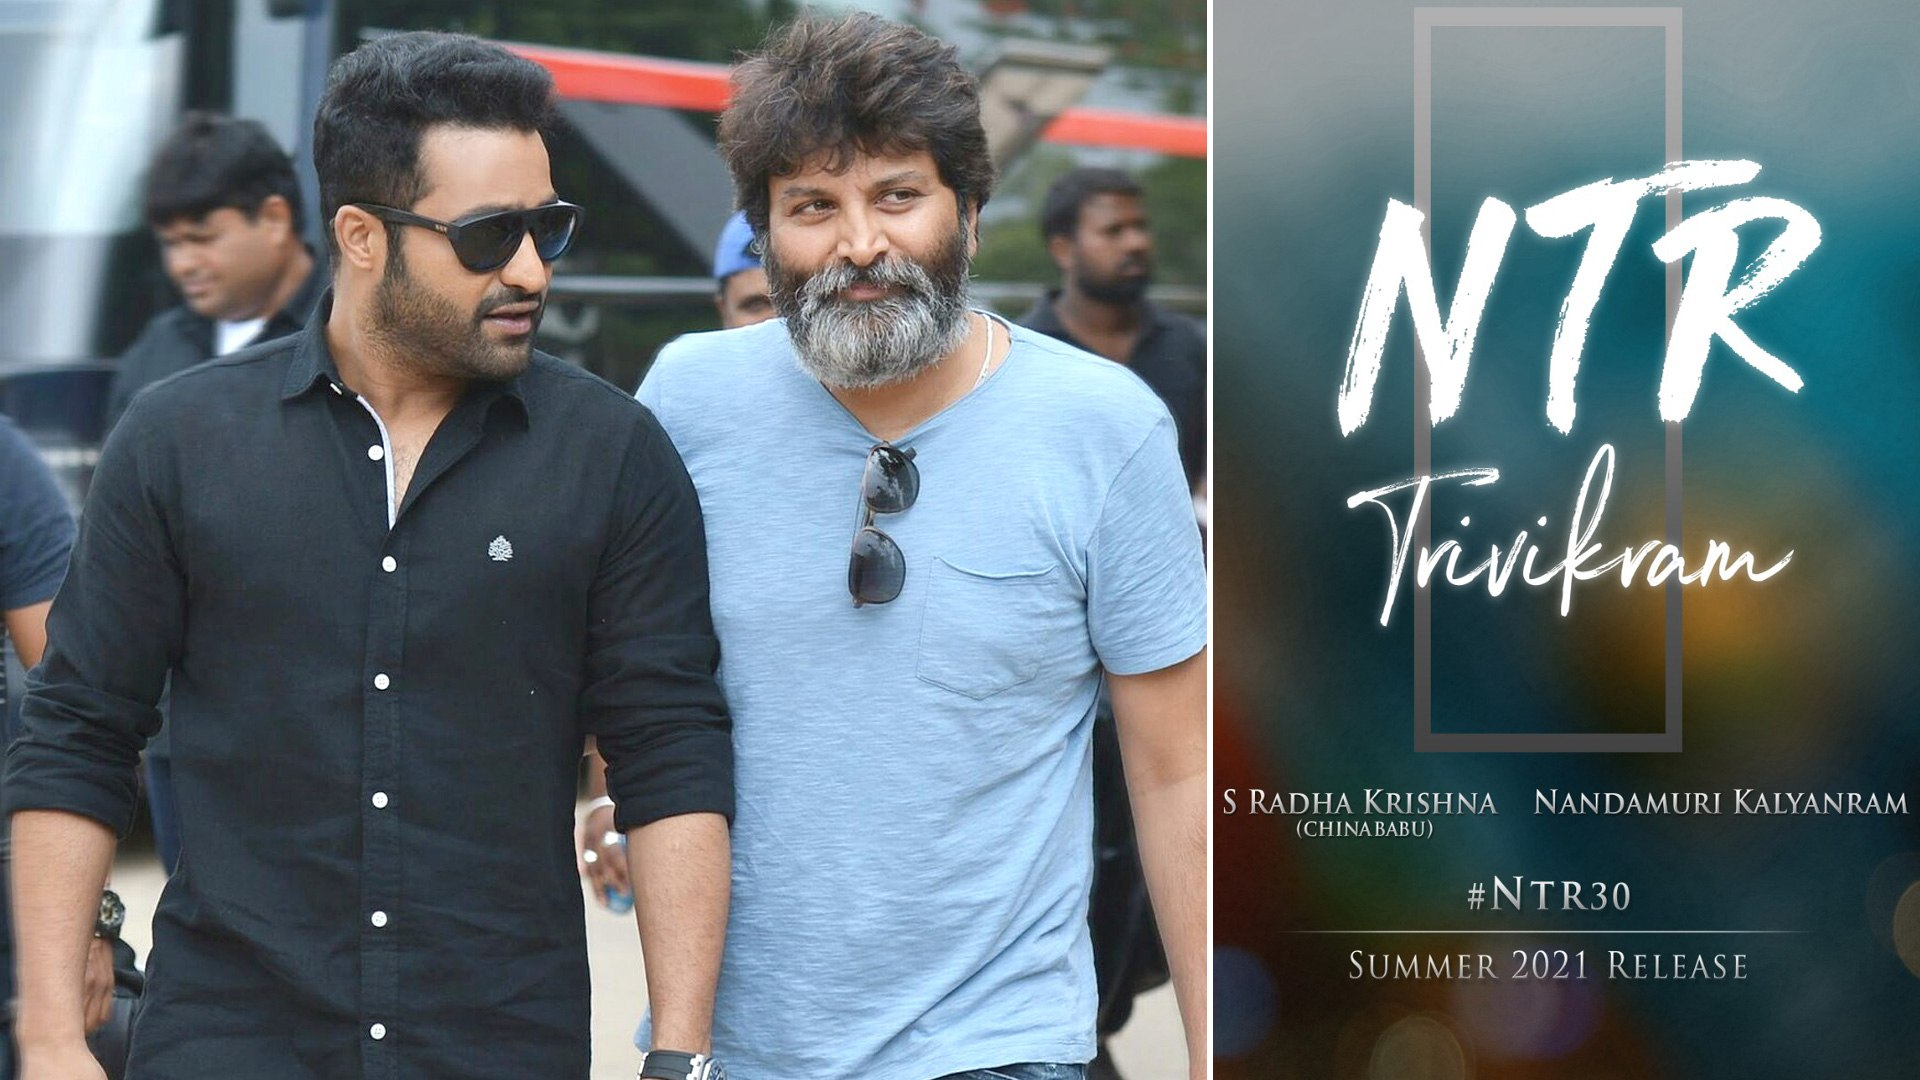 Ntr 30 : Ntr Trivikram Movie To Hit The Screens On Summer 2021 - Video  Dailymotion